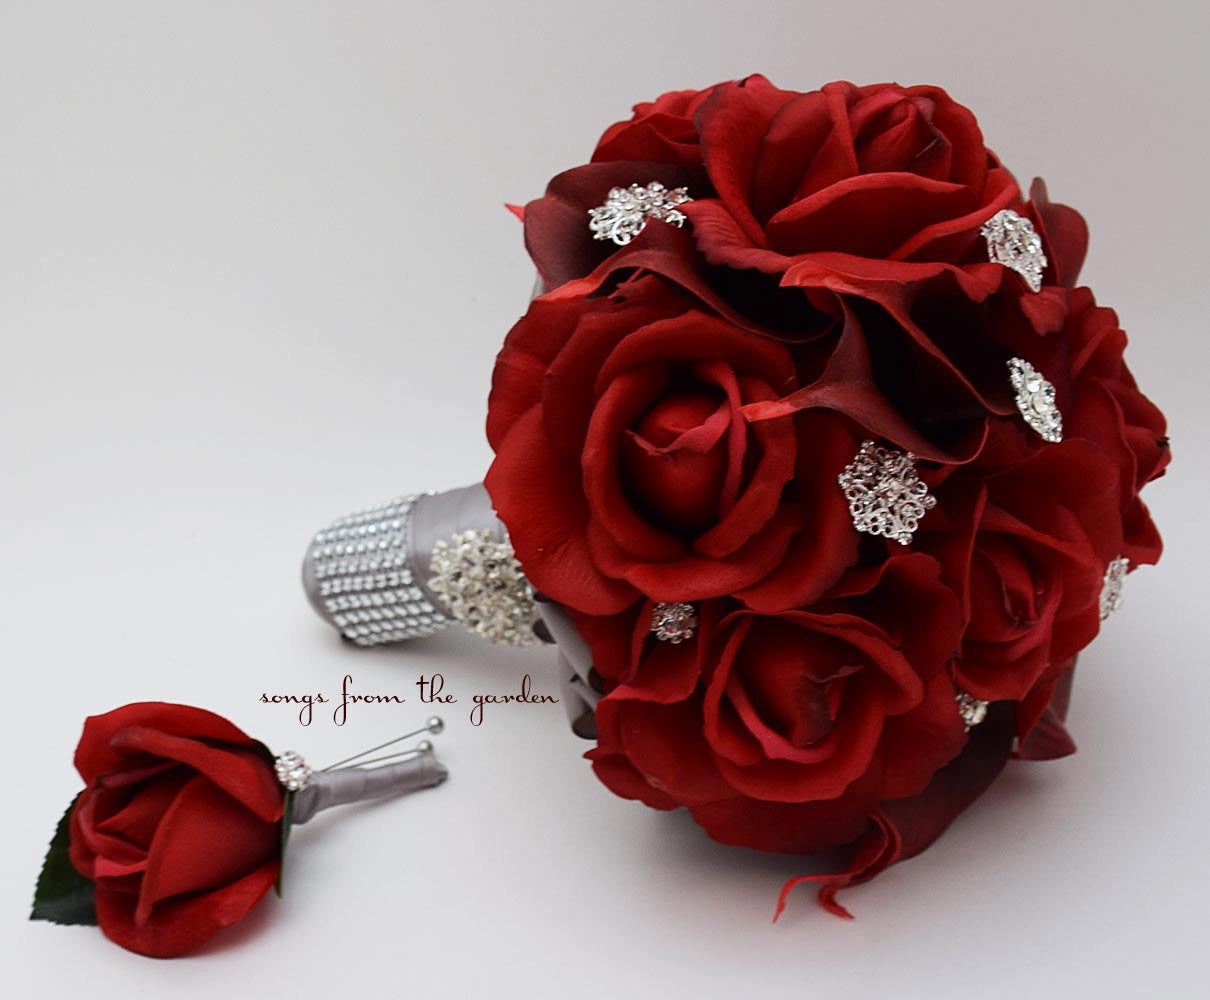 Red Real Touch Roses Calla Lilies & Rhinestones Bridal Bouquet with Groom's Boutonniere